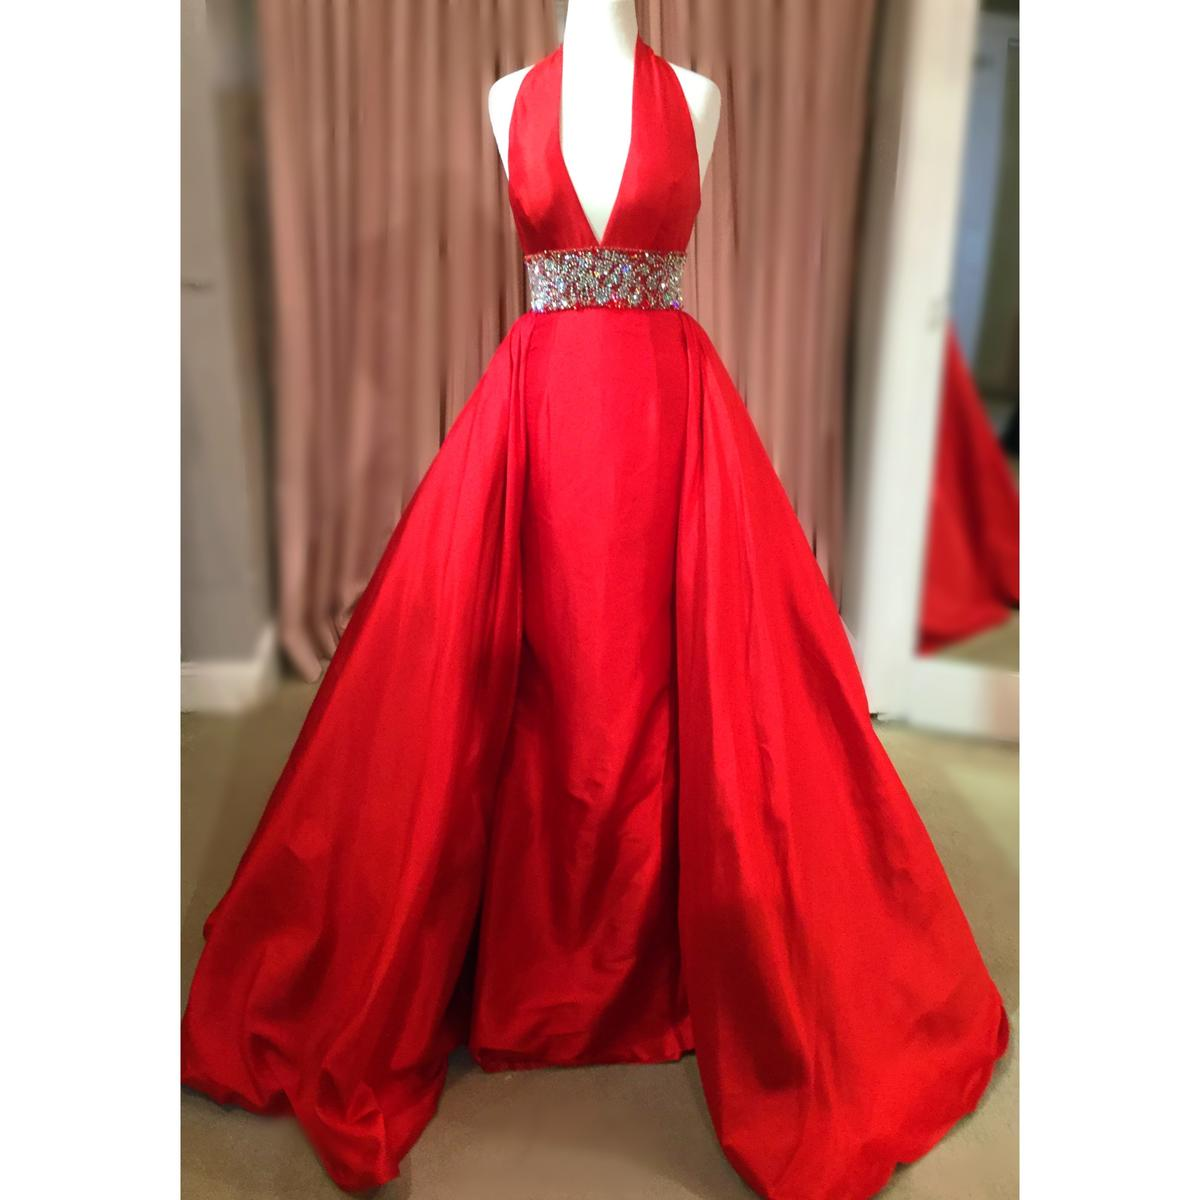 Sherri Hill Couture Pageant Dress